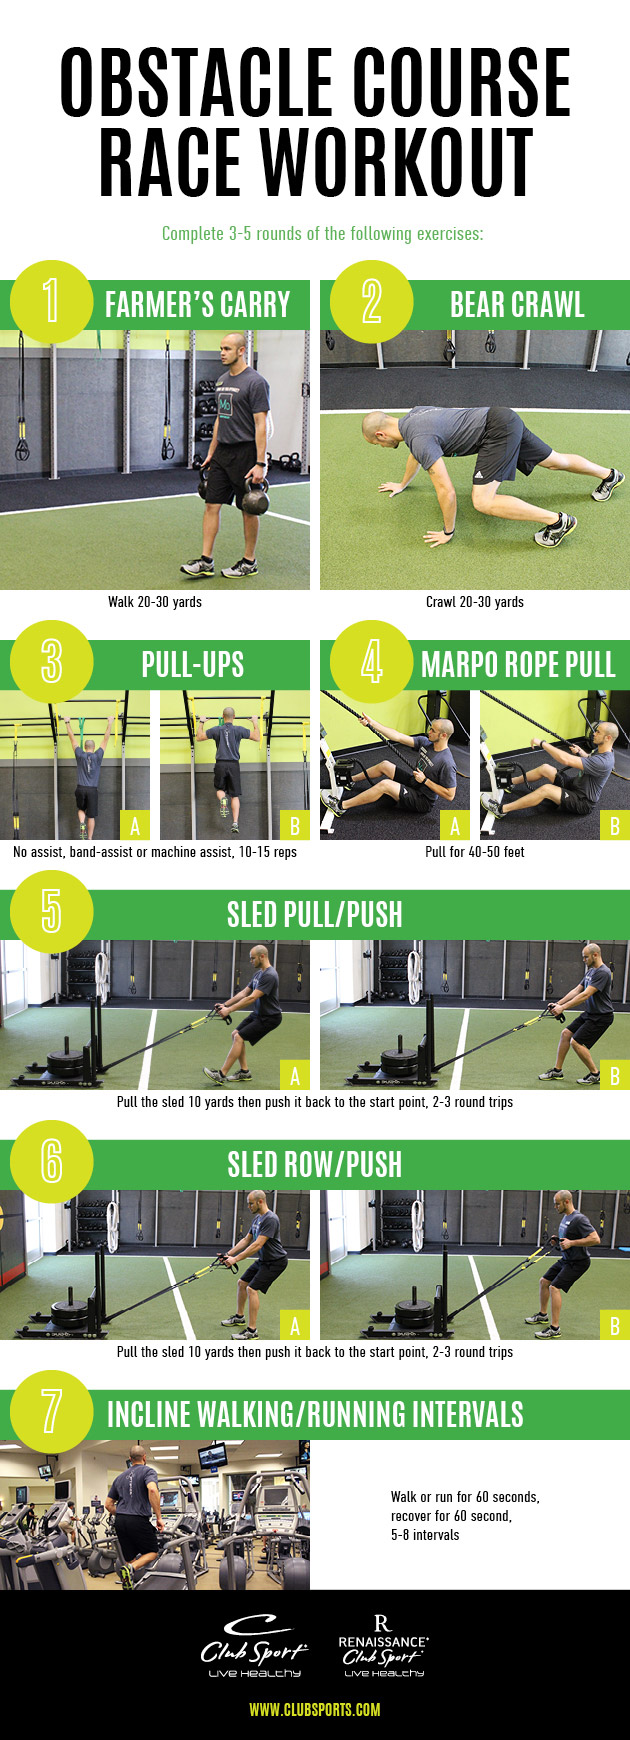 Obstacle Course Race Workout